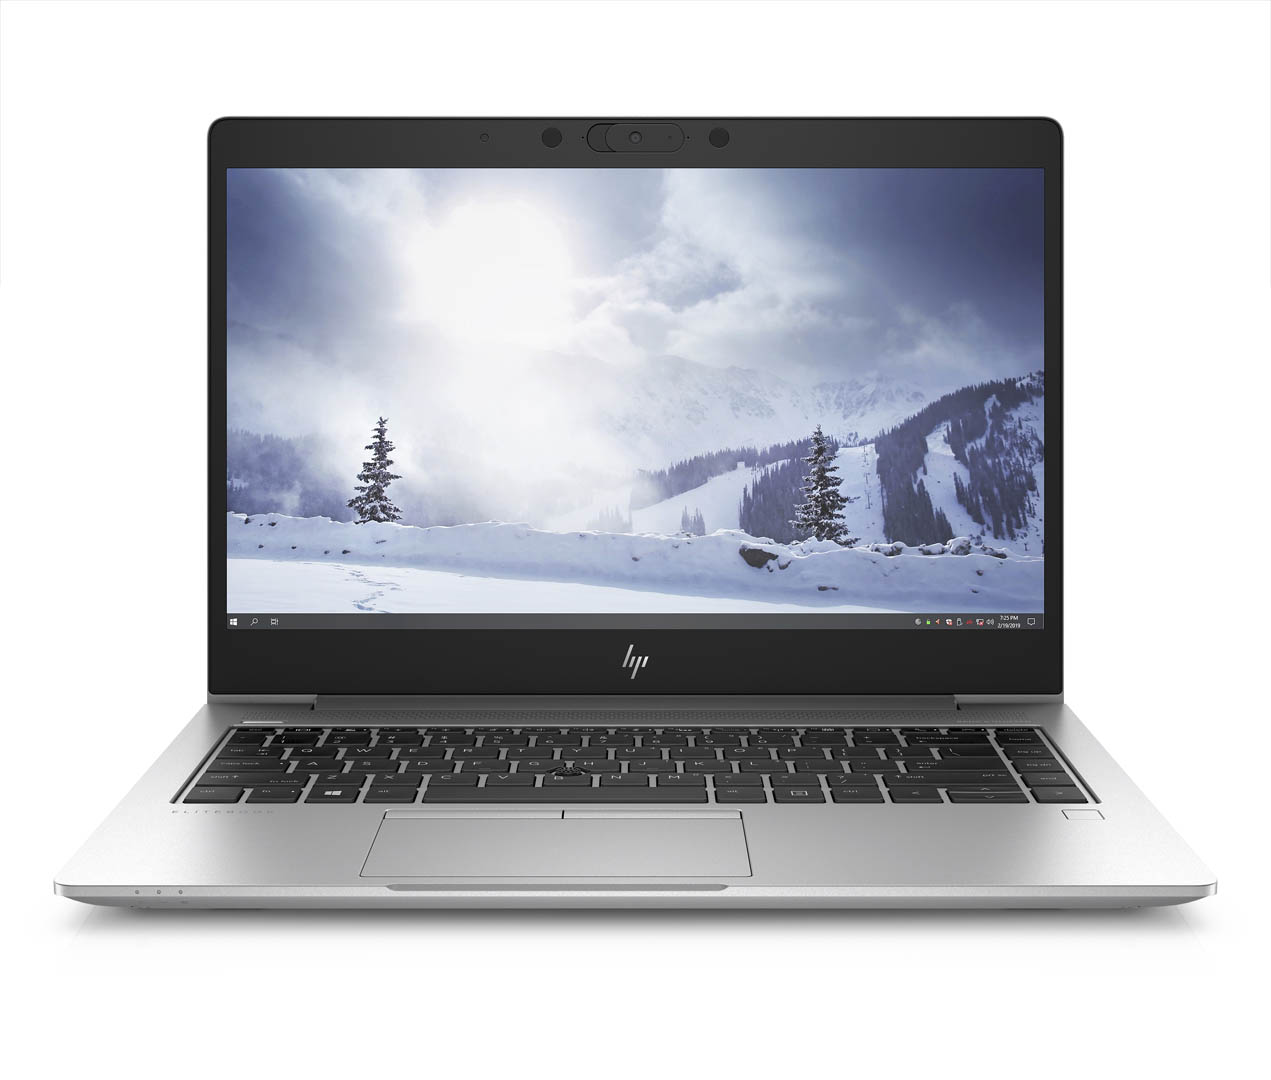 HP annuncia gli EliteBook 700 G6 e l'HP mt45 Mobile Thin Client 16